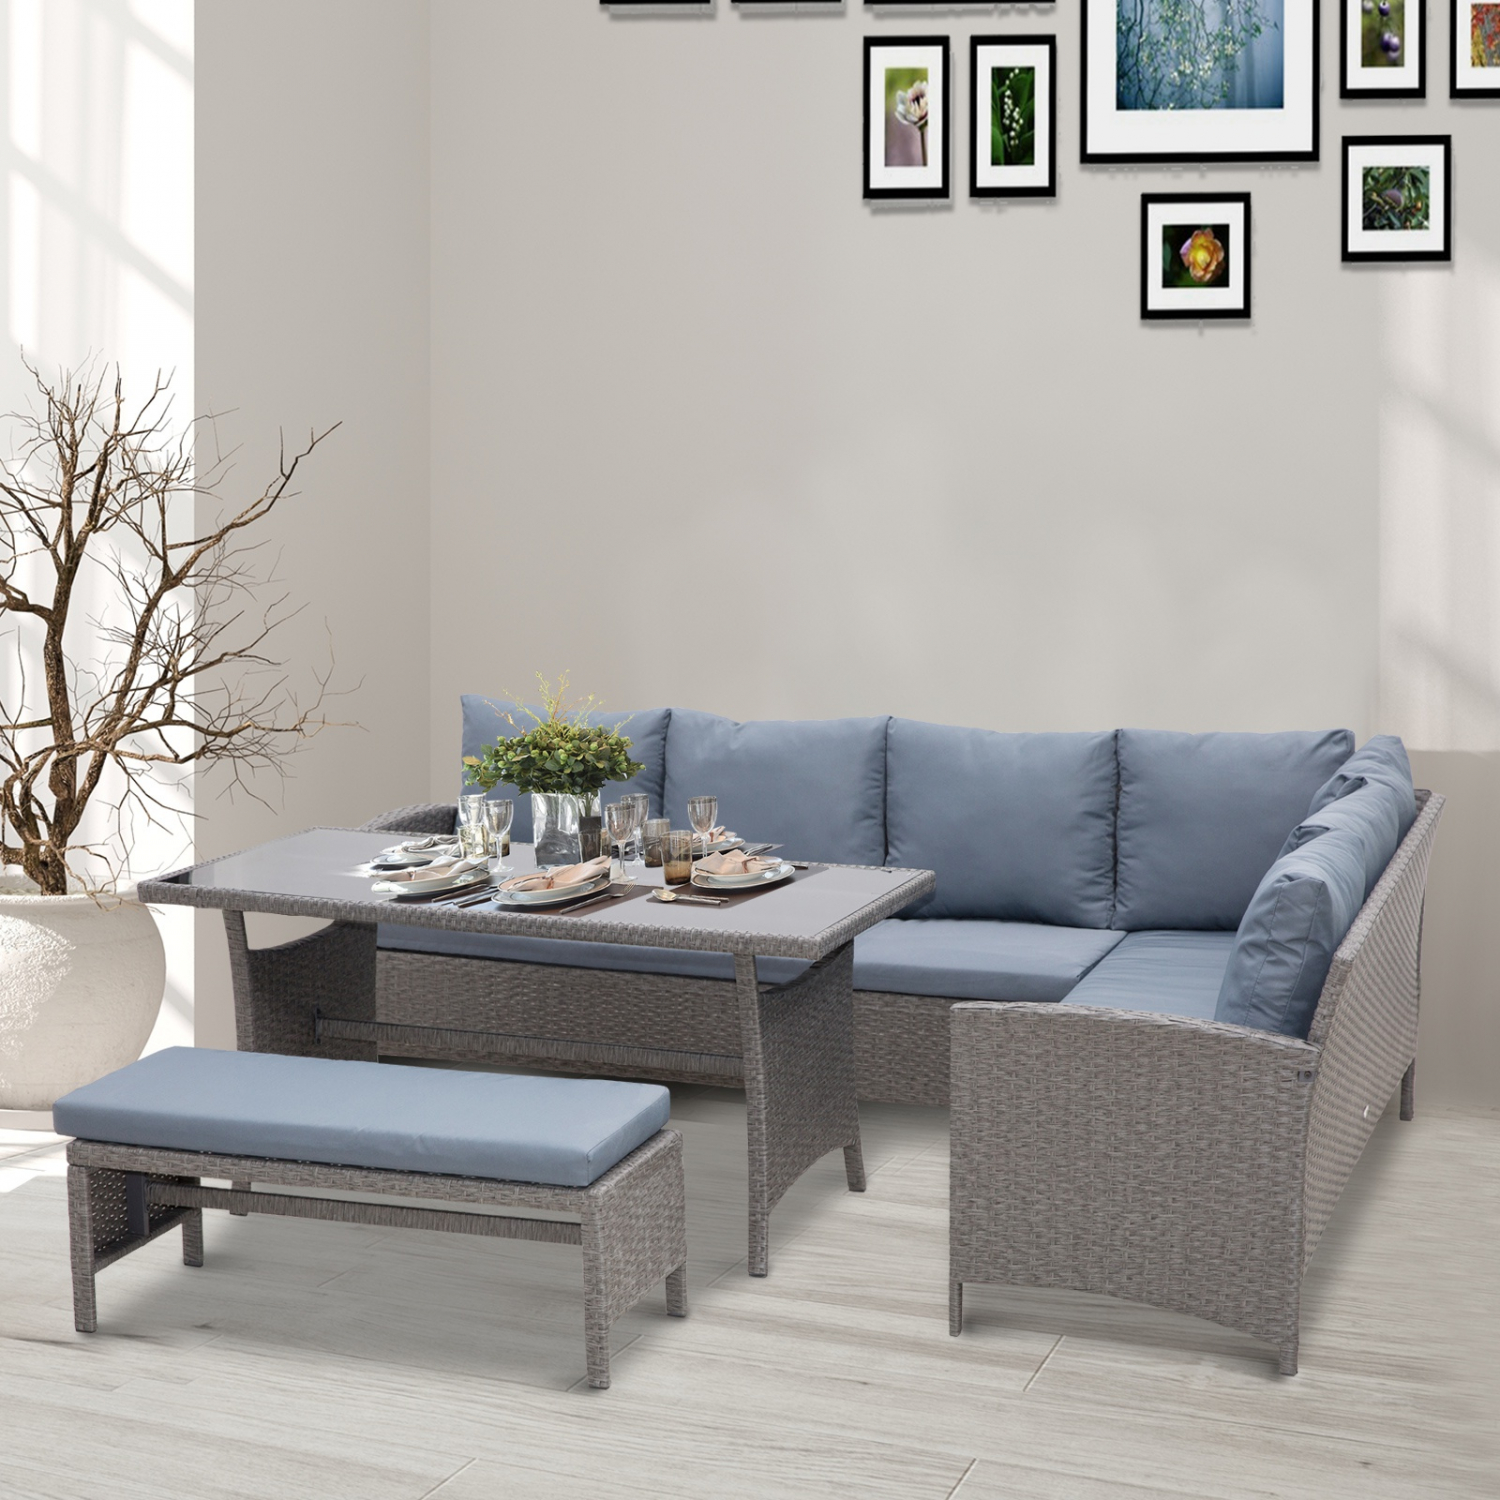 Patio Furniture Sets Clearance Dining Table Sofa Bench ...